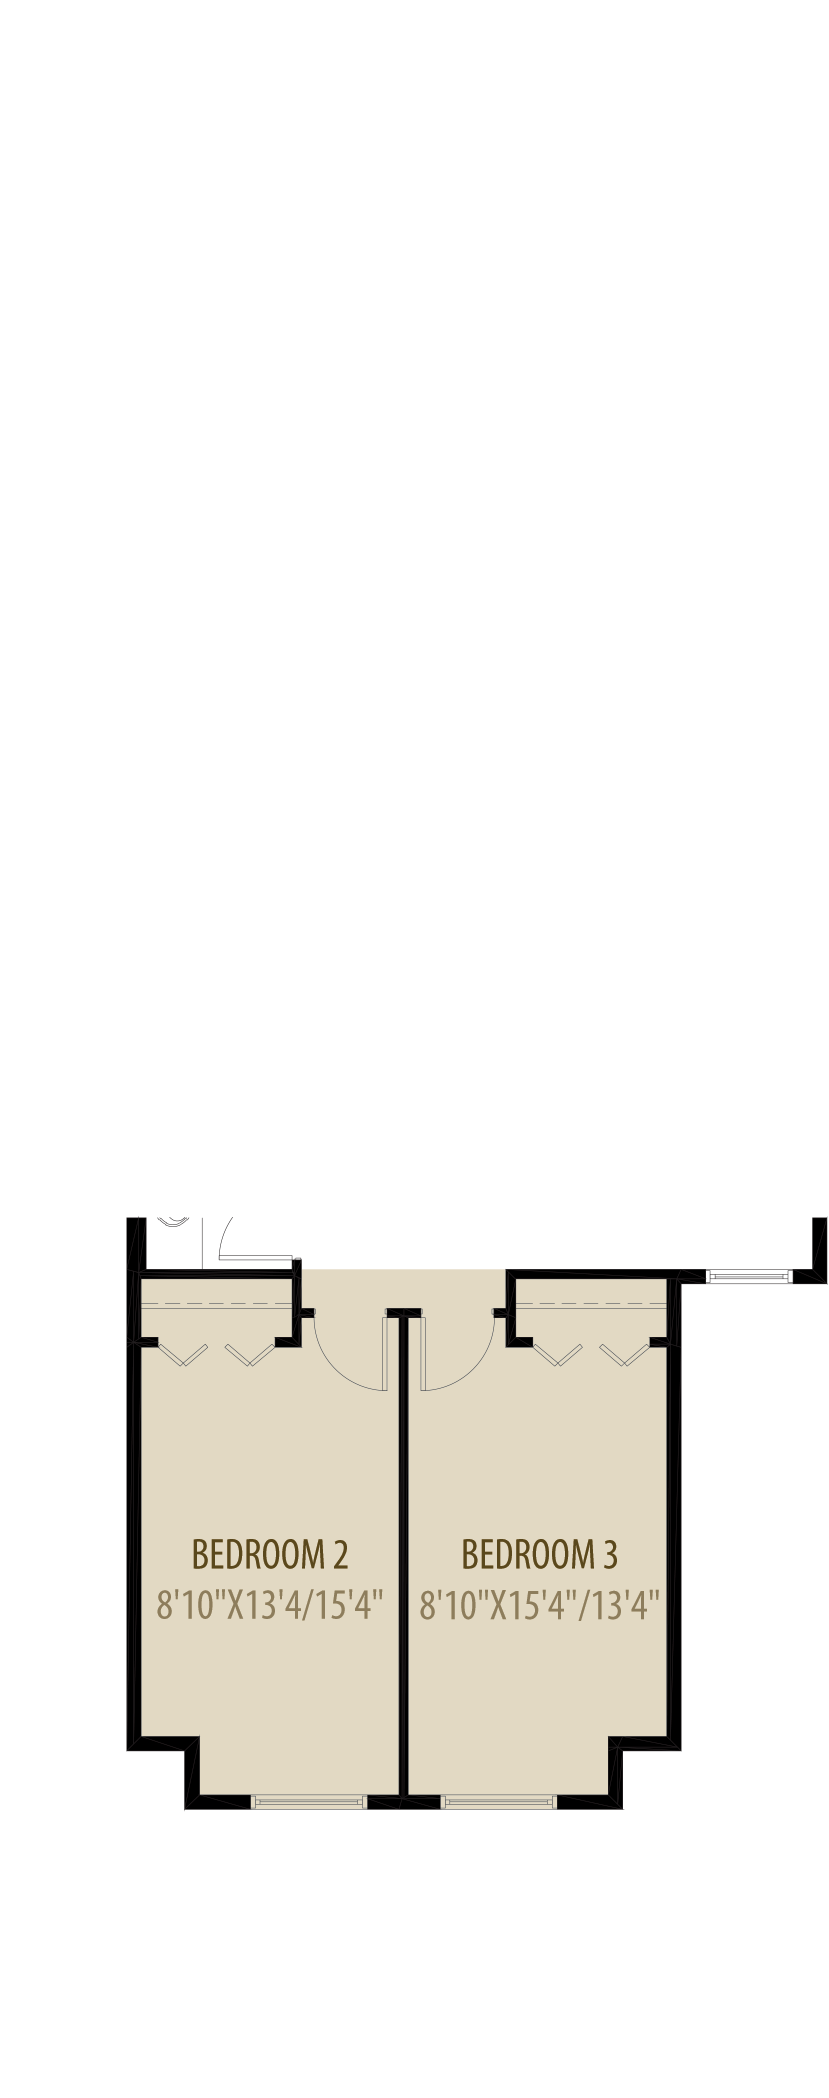 Option 3 Extended Bedrooms Adds 76Sq Ft